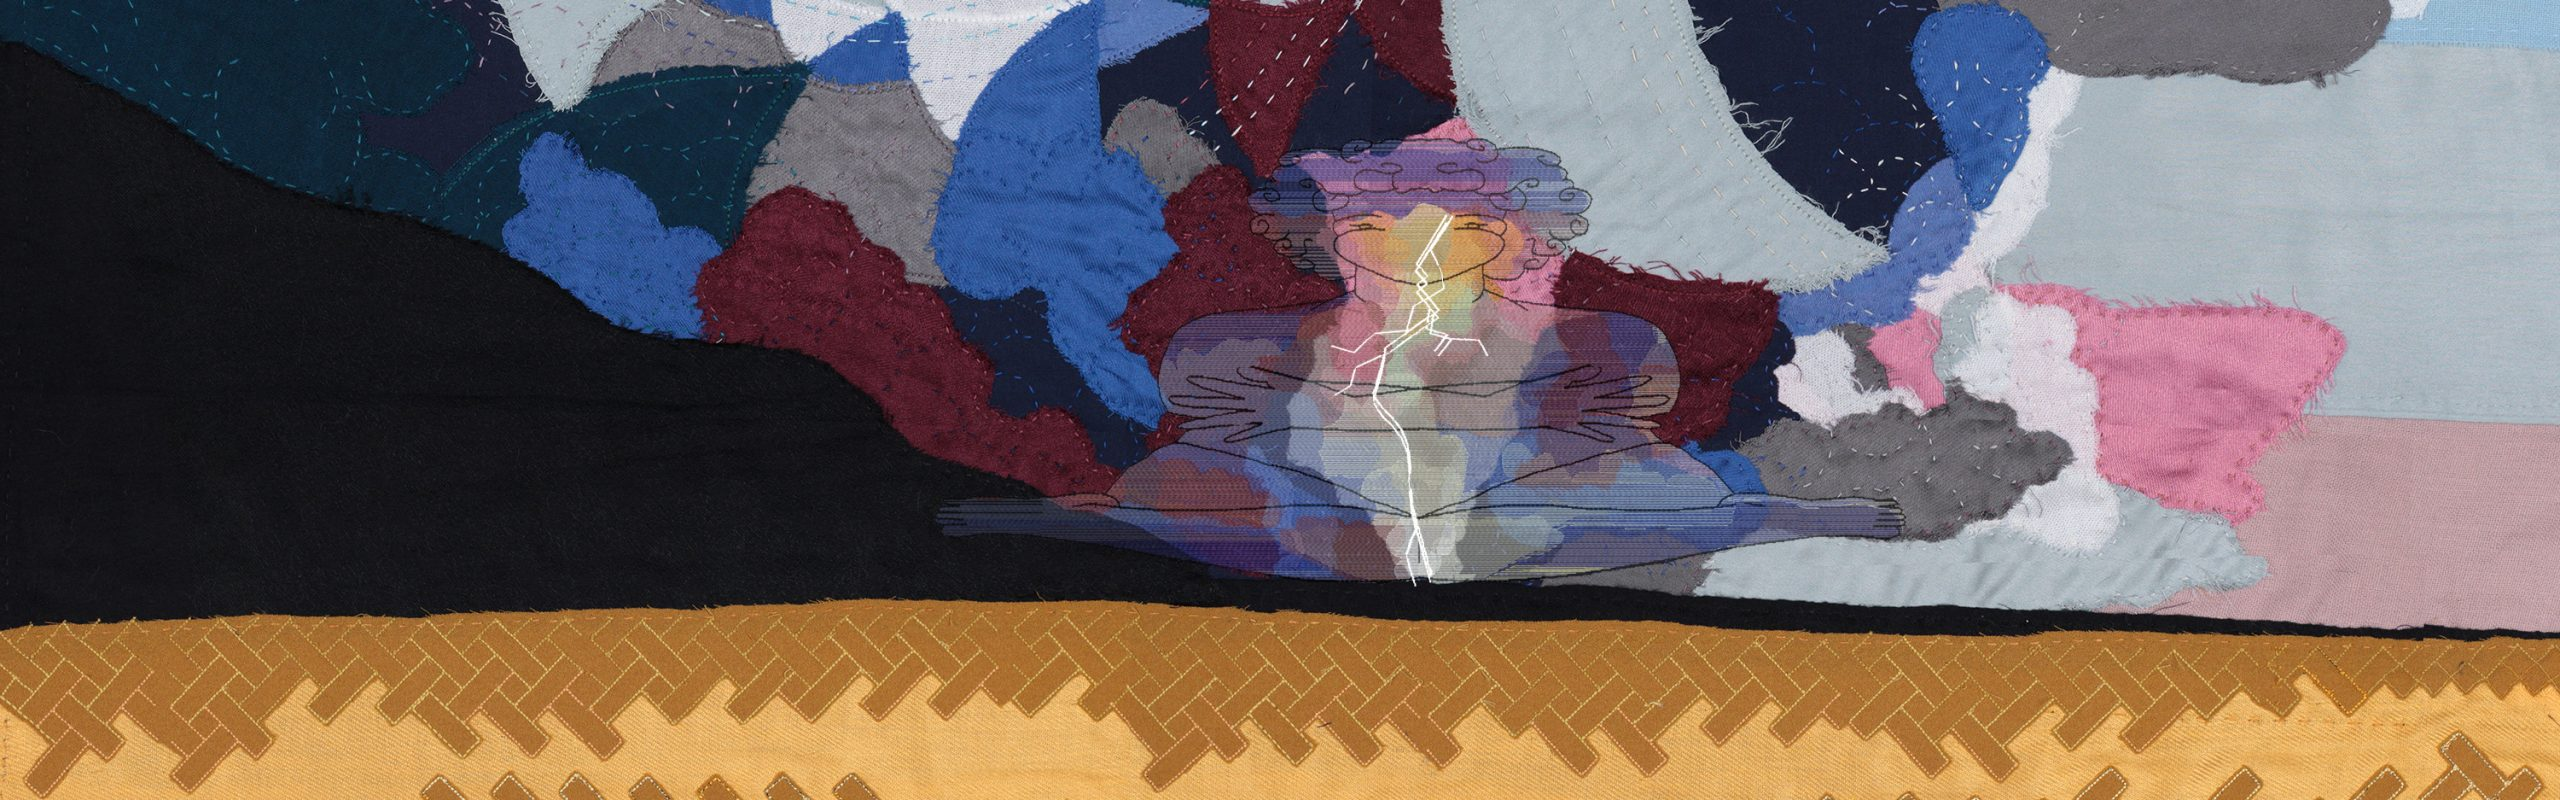 Caitlin Thompson:  Embroidermation- Stitches to Pixels